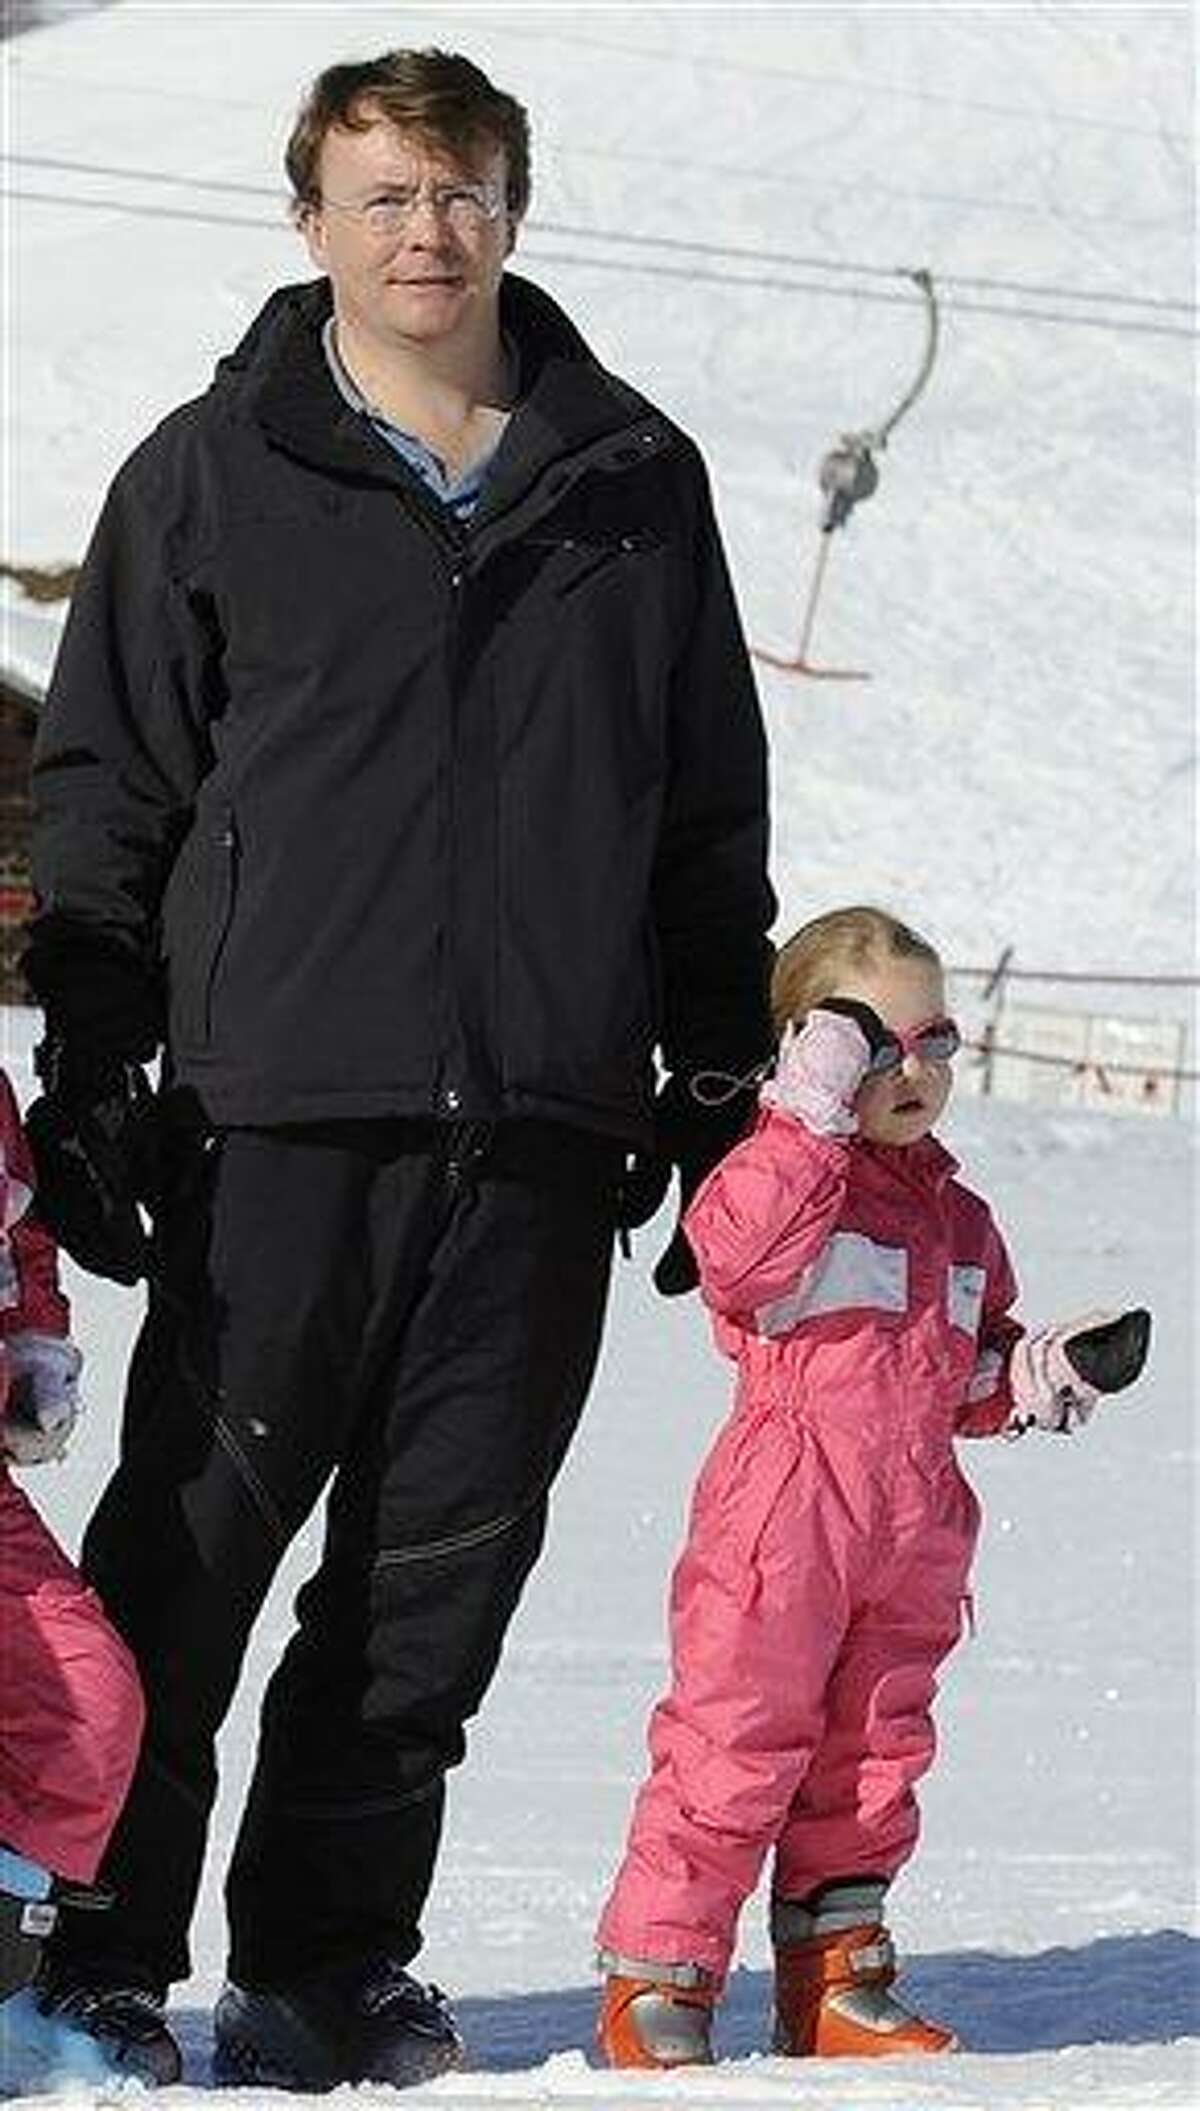 In this 2011 file photo, Netherland's Prince Friso, left, and his daughter, Zaria, right, pose for photographers during a photo session in the Austrian skiing resort of Lech. Queen Beatrix's second son has been seriously injured in an avalanche and his